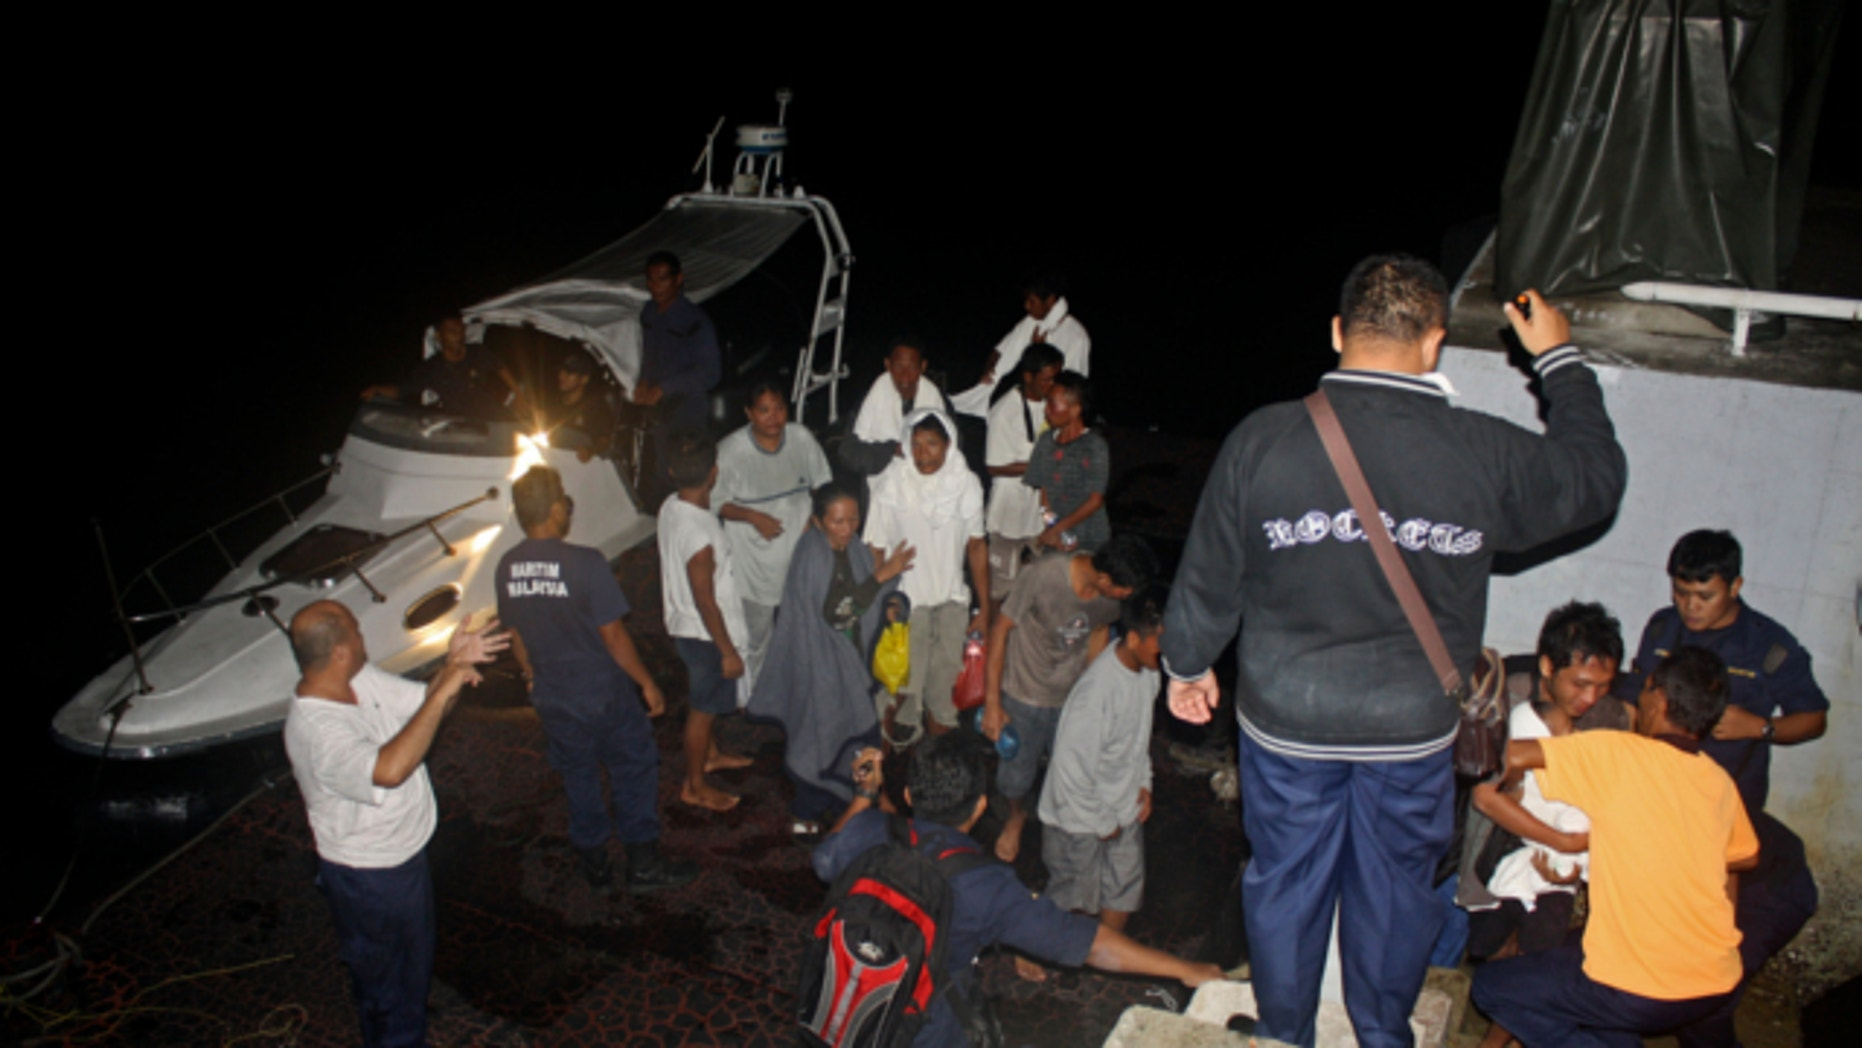 FILE: July 18, 2013: This photo released by Malaysian Maritime Enforcement Agency shows Indonesian passengers who were rescued from an overturned boat at a jetty in Tanjung Sedili, Johor state, Malaysia.